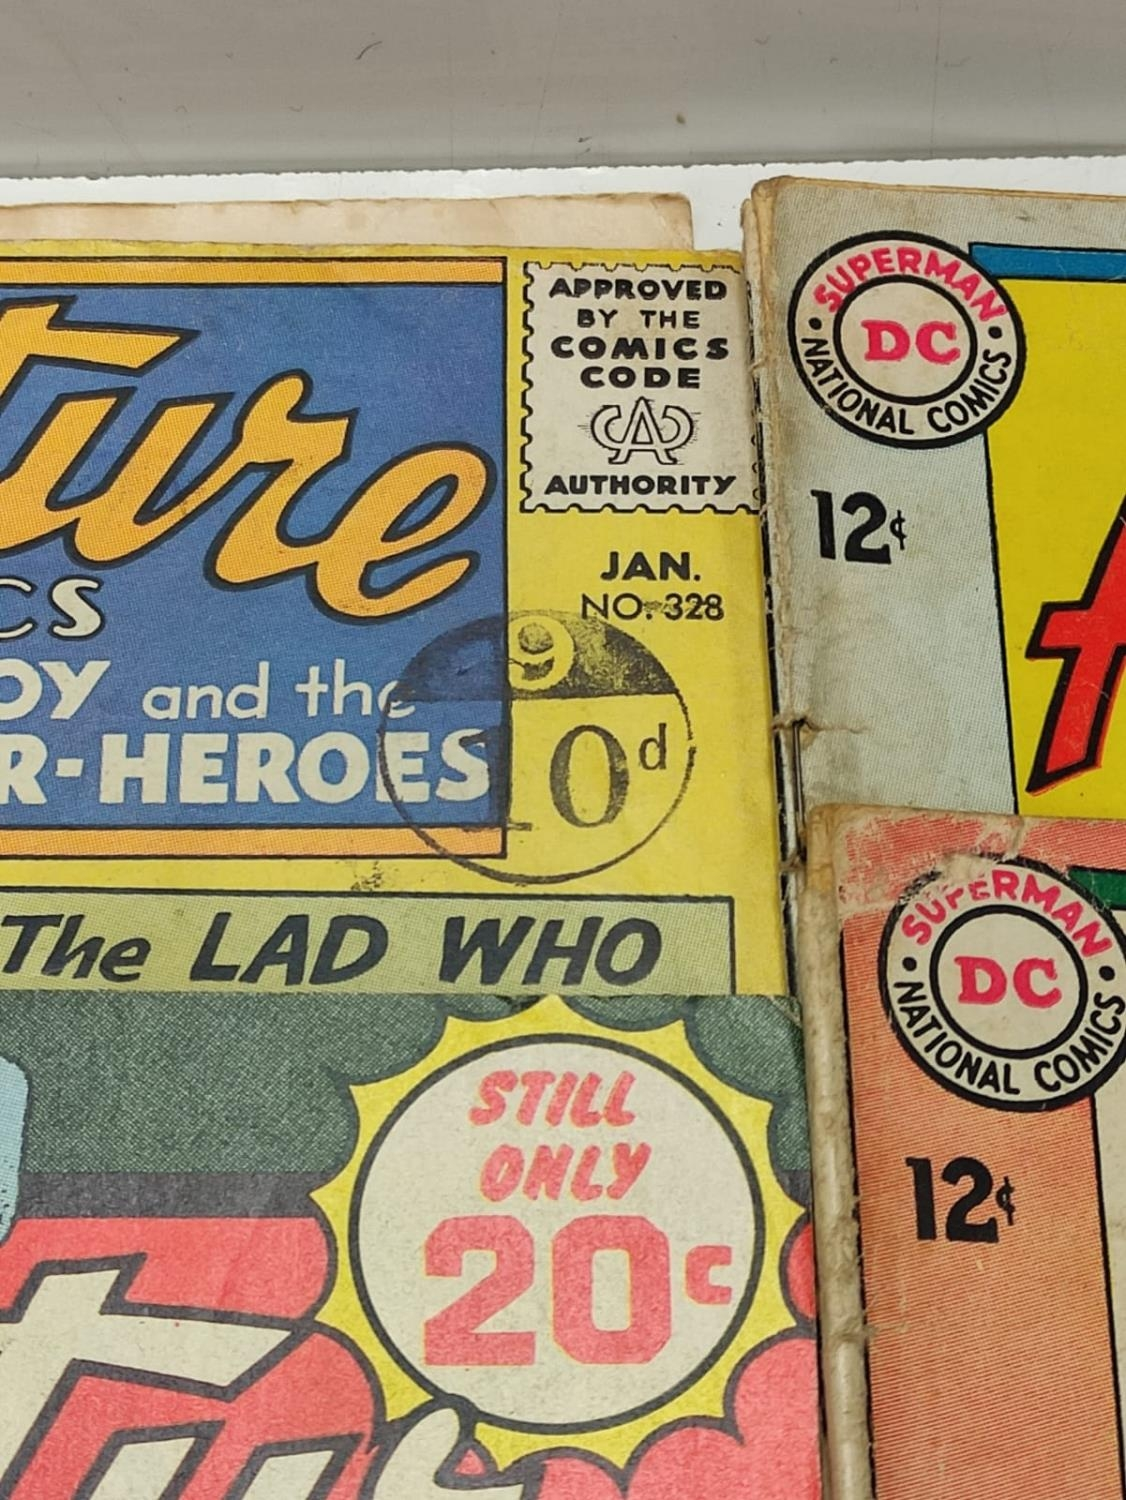 5 editions of DC Adventure Comics featuring Super-boy. - Image 11 of 19